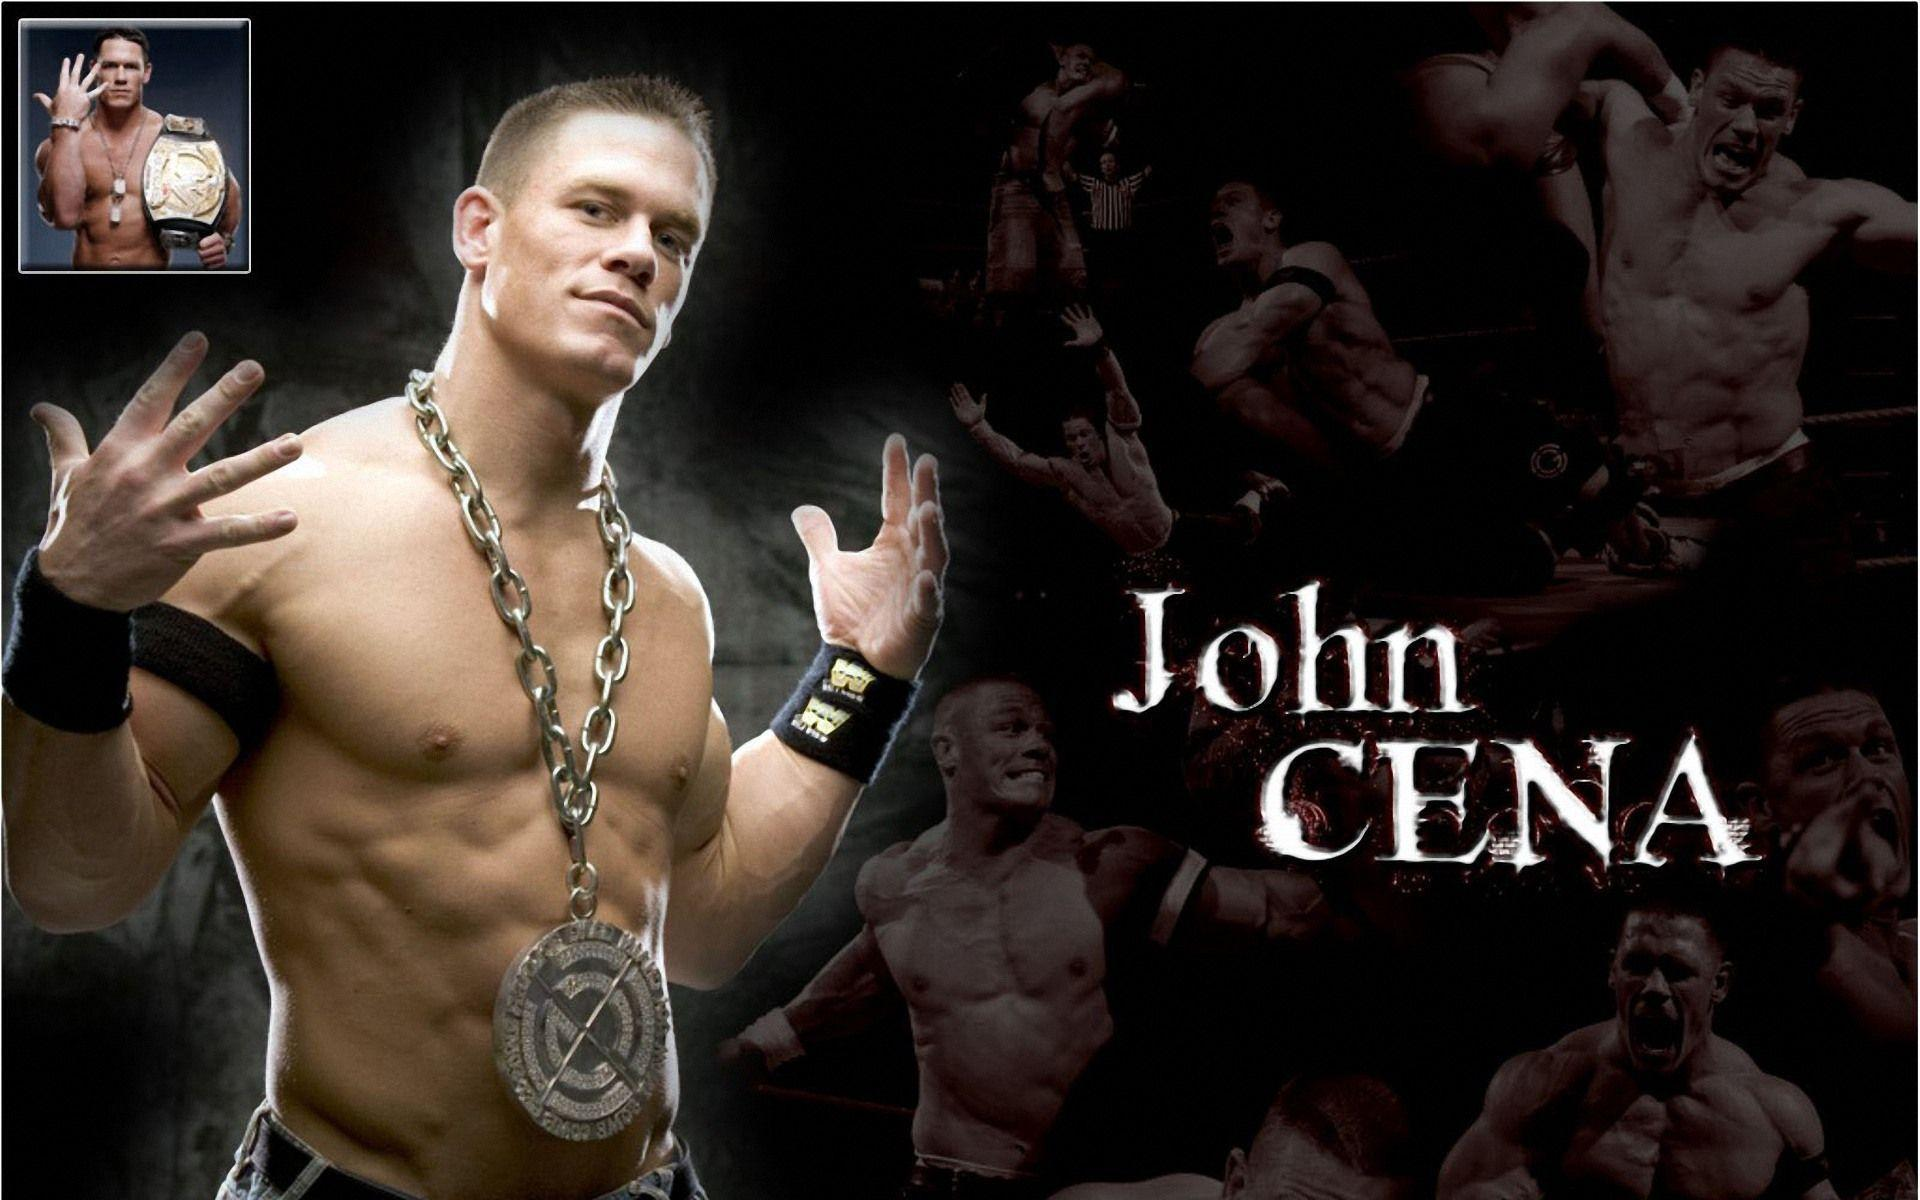 wwe wallpaper 1280x1024 jhone chena - photo #21